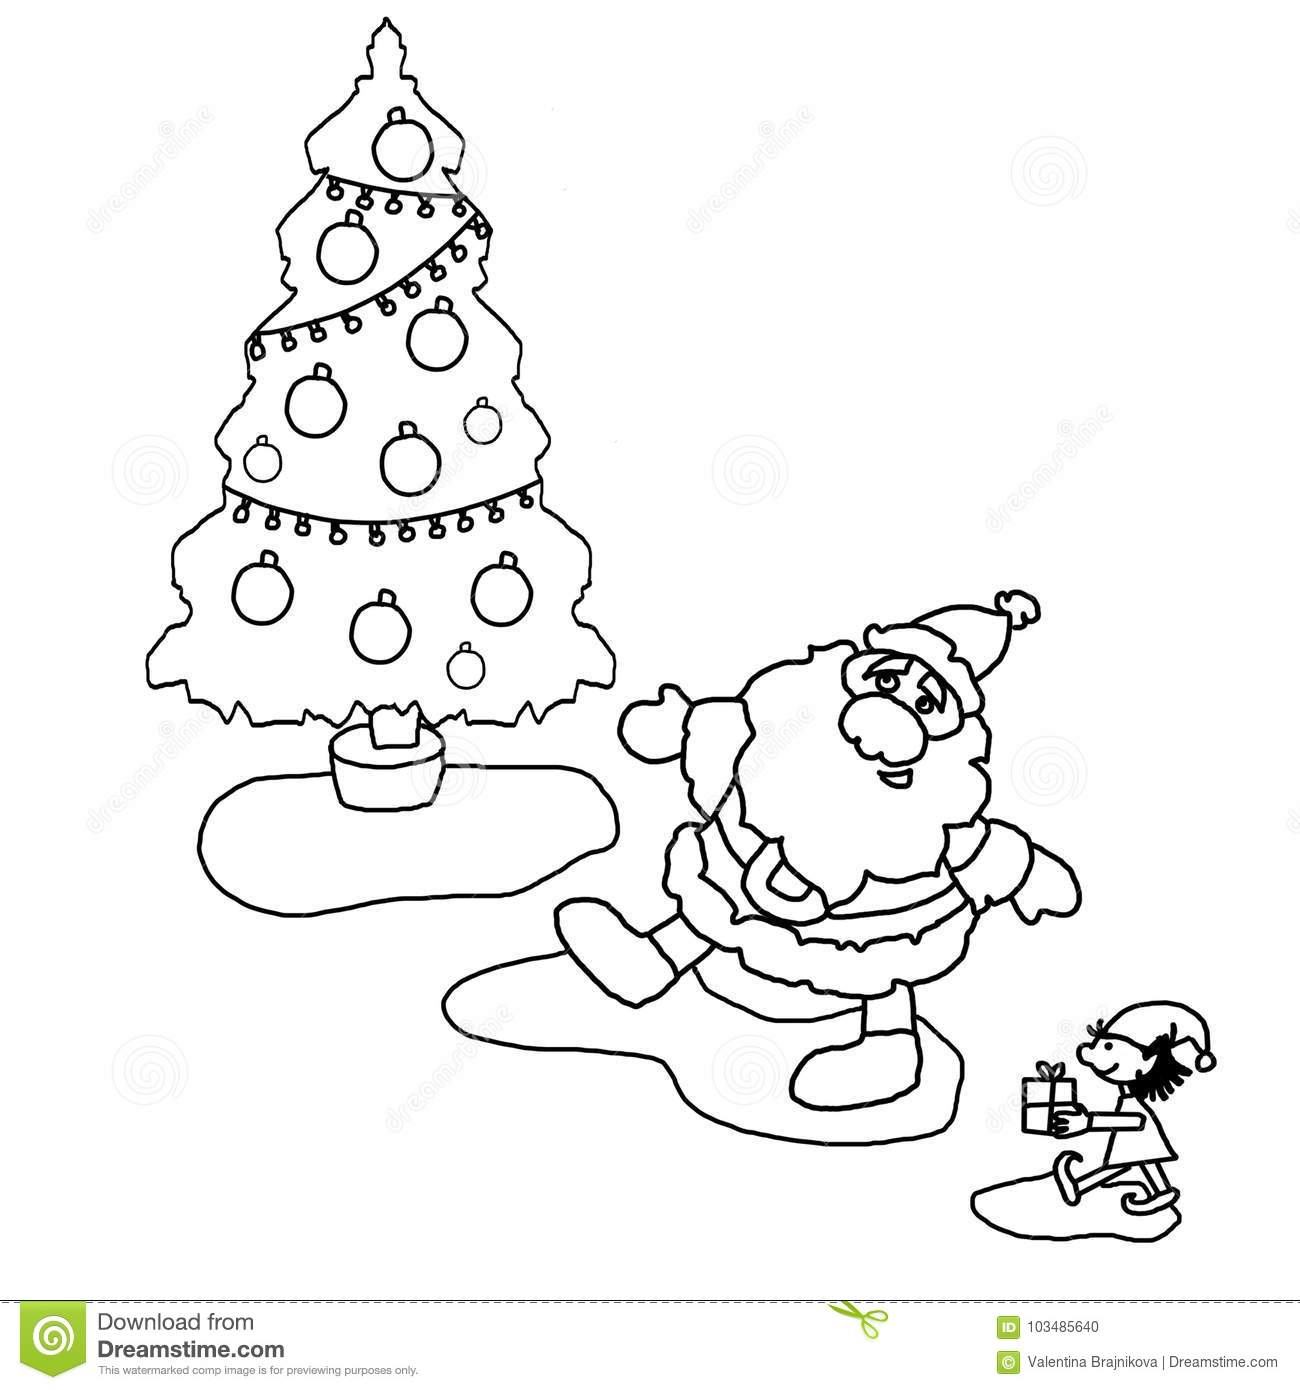 illustration coloring black and white christmas tree santa claus little helper